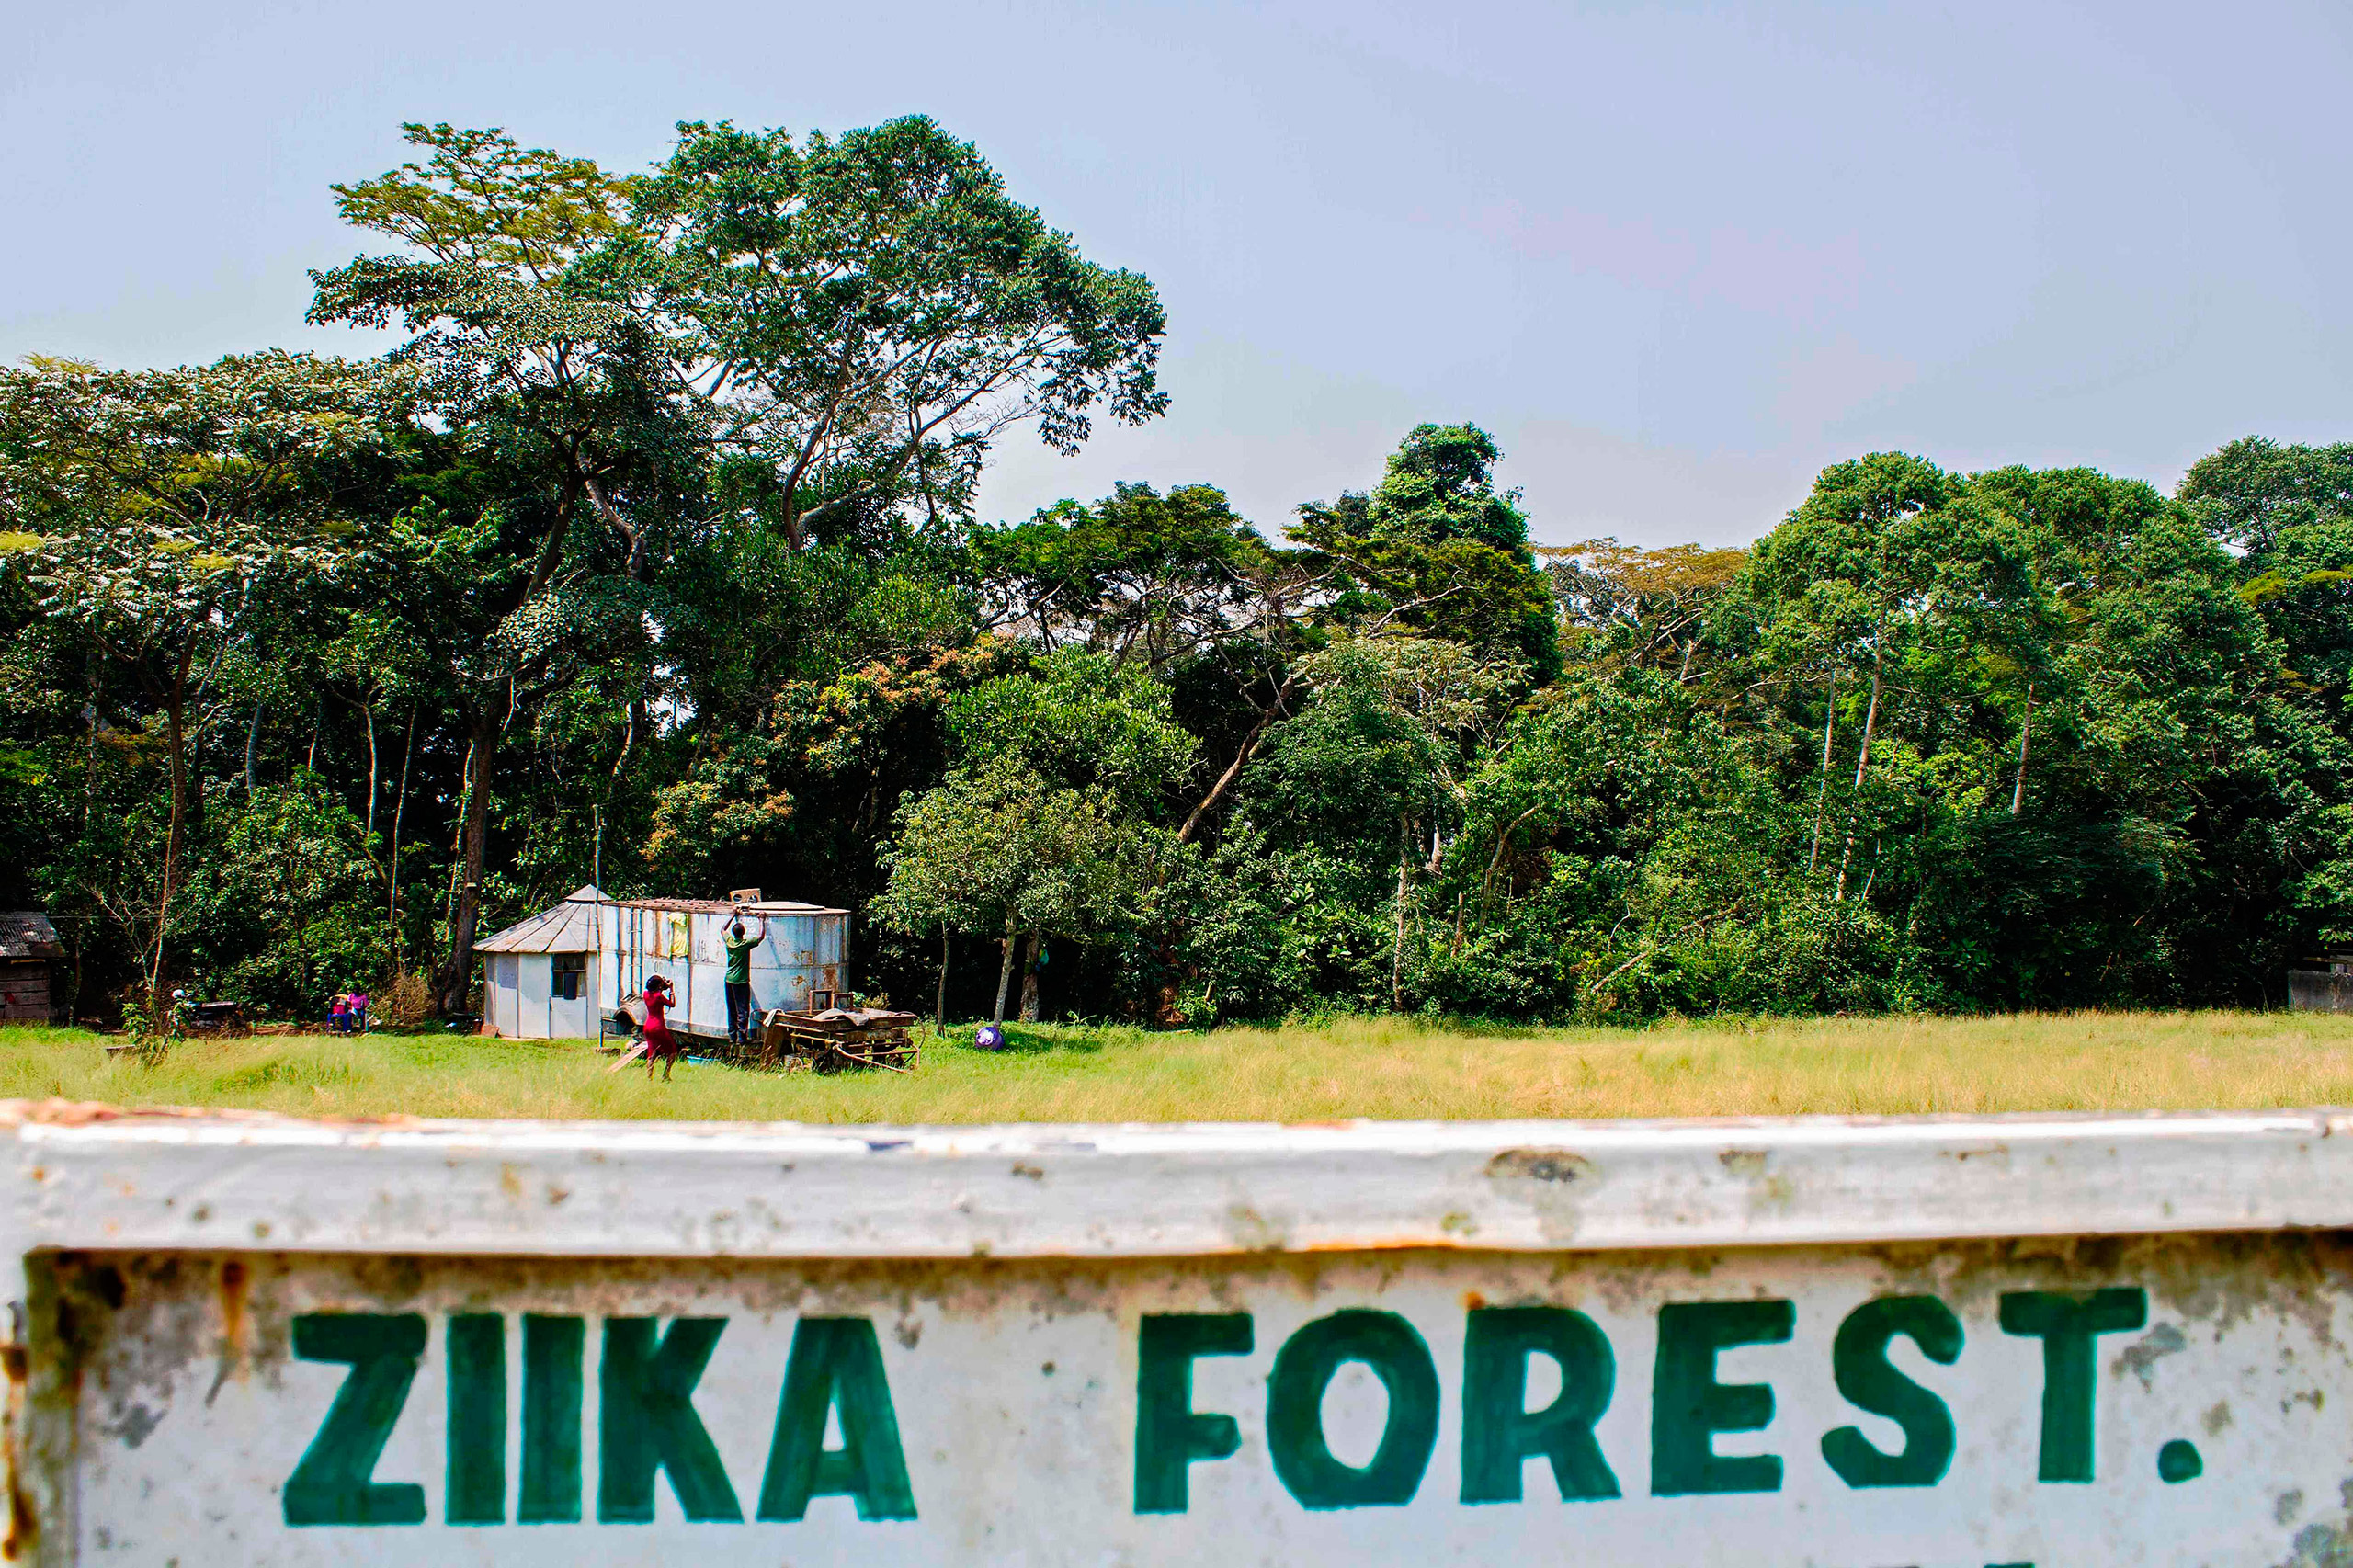 A sign post leading to the Ziika forest is seen near Entebbe, Uganda, Jan. 29, 2016. The Zika virus was first discovered here by scientists in April 1947 after testing a macaque monkey.